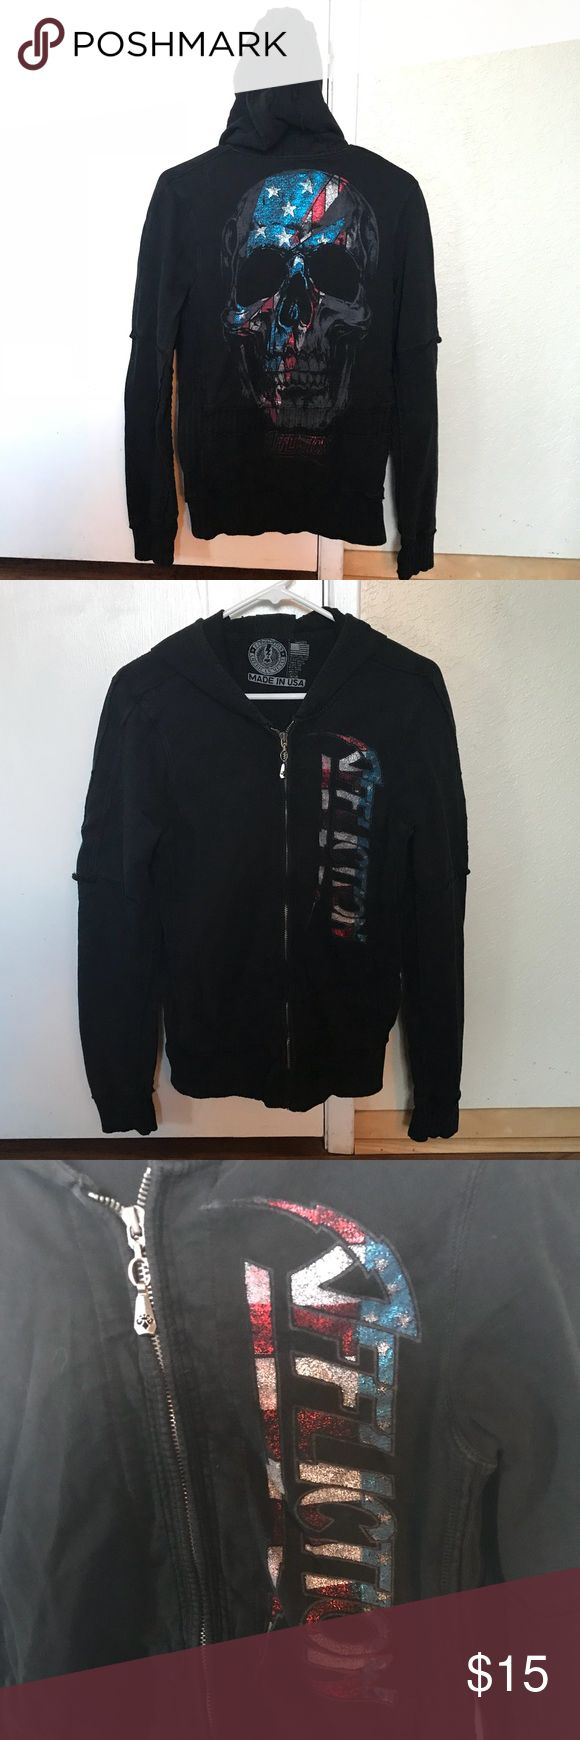 Affliction American Flag Skull Sweatshirt Affliction American flag skull zip up sweatshirt. Has different fabric details on sleeves and around hood. Affliction written on front in American flag metallic print. Back has skull in American flag print metallic print. Has a hood. Worn a few times, but still in good condition. Size large, but runs a bit on the smaller side. Affliction Tops Sweatshirts & Hoodies